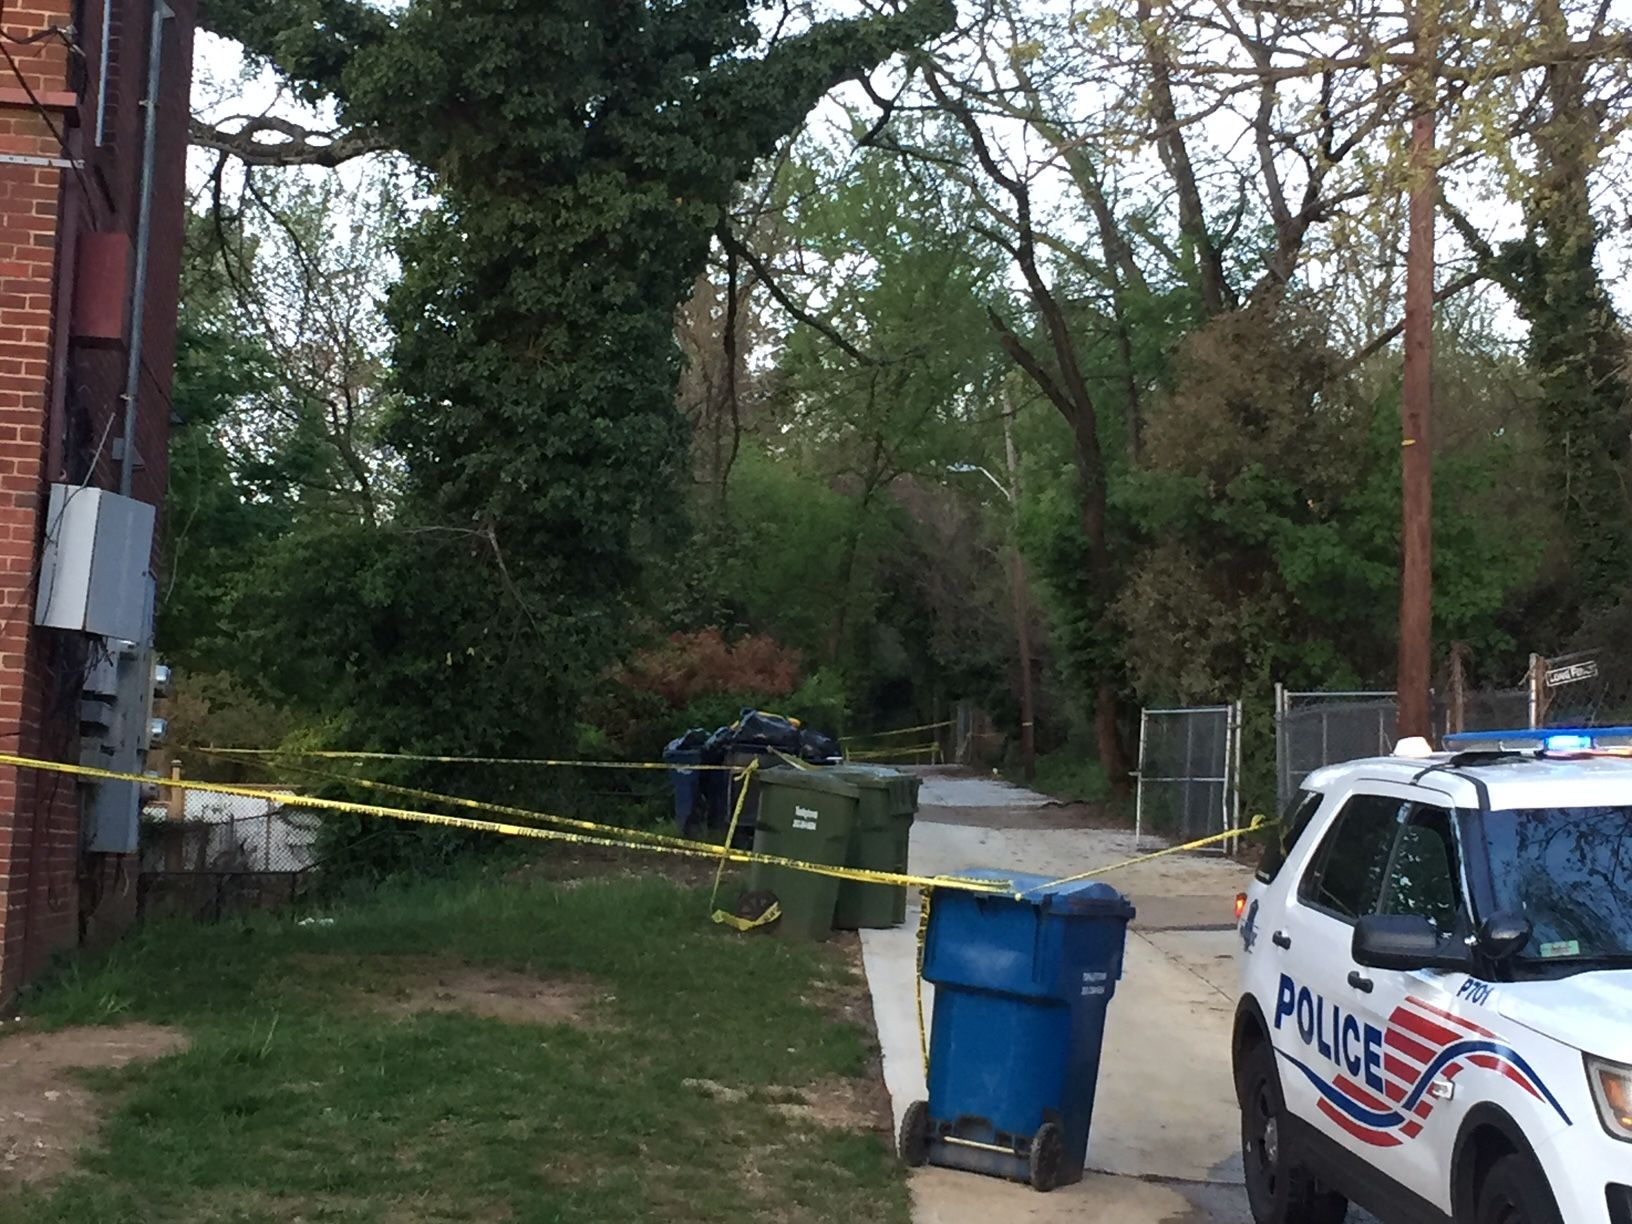 Police tape marks off the area where three sets of skeletal remains were found last month. (WTOP/John Domen)